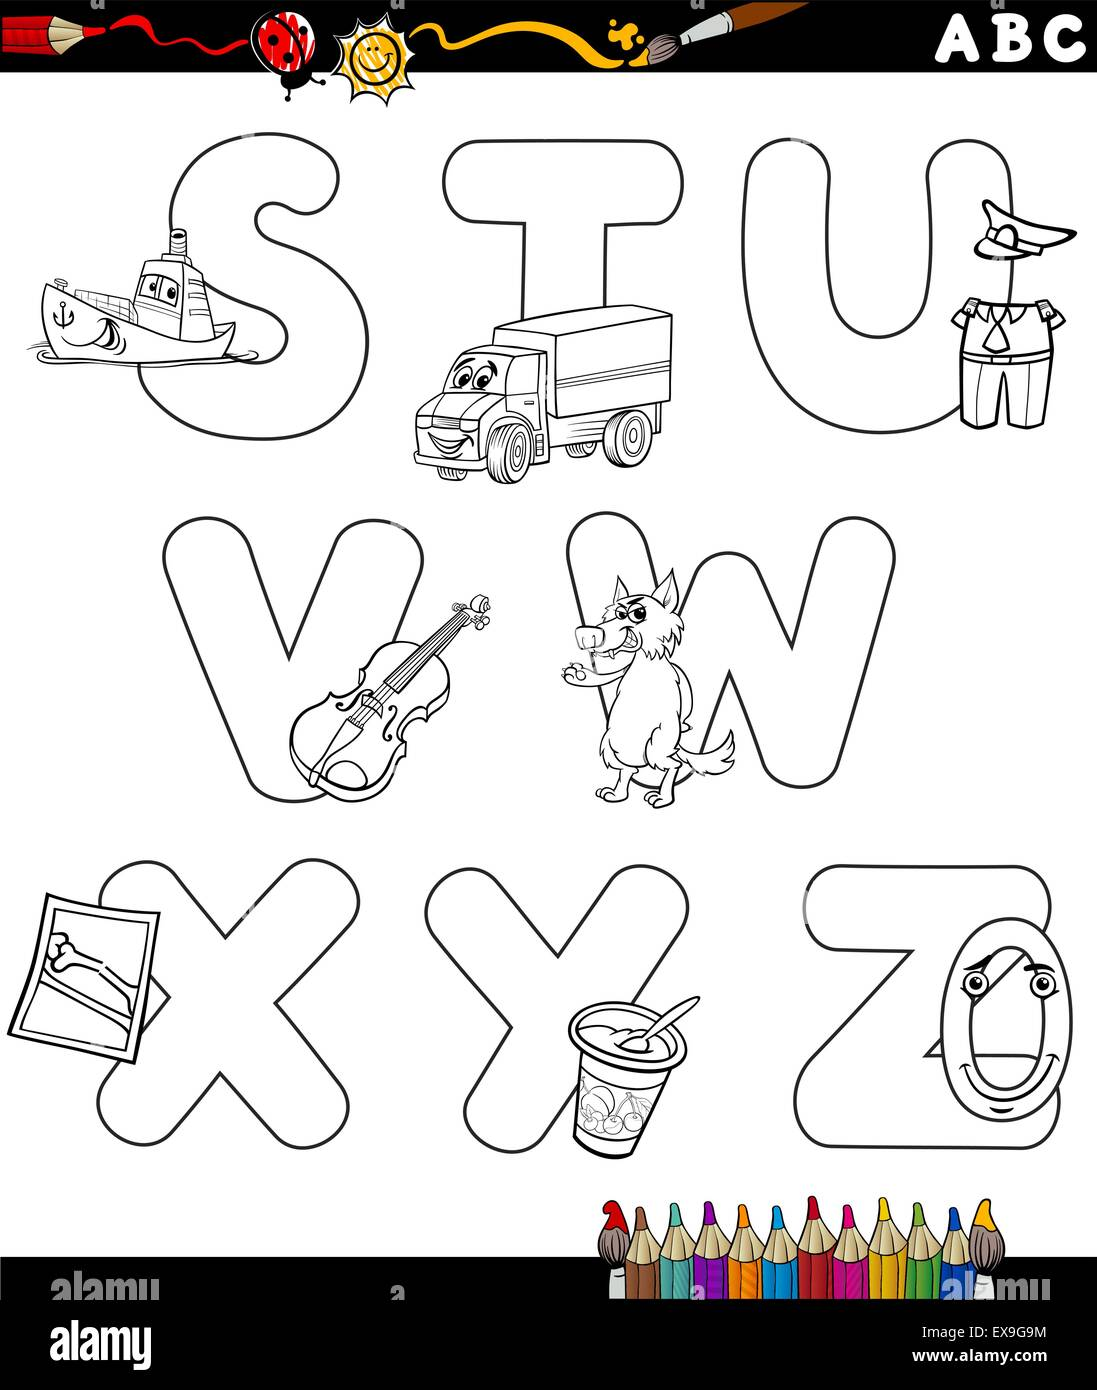 Cartoon school objects coloring page stock photos cartoon school black and white cartoon illustration of capital letters alphabet with objects for children education from s altavistaventures Images